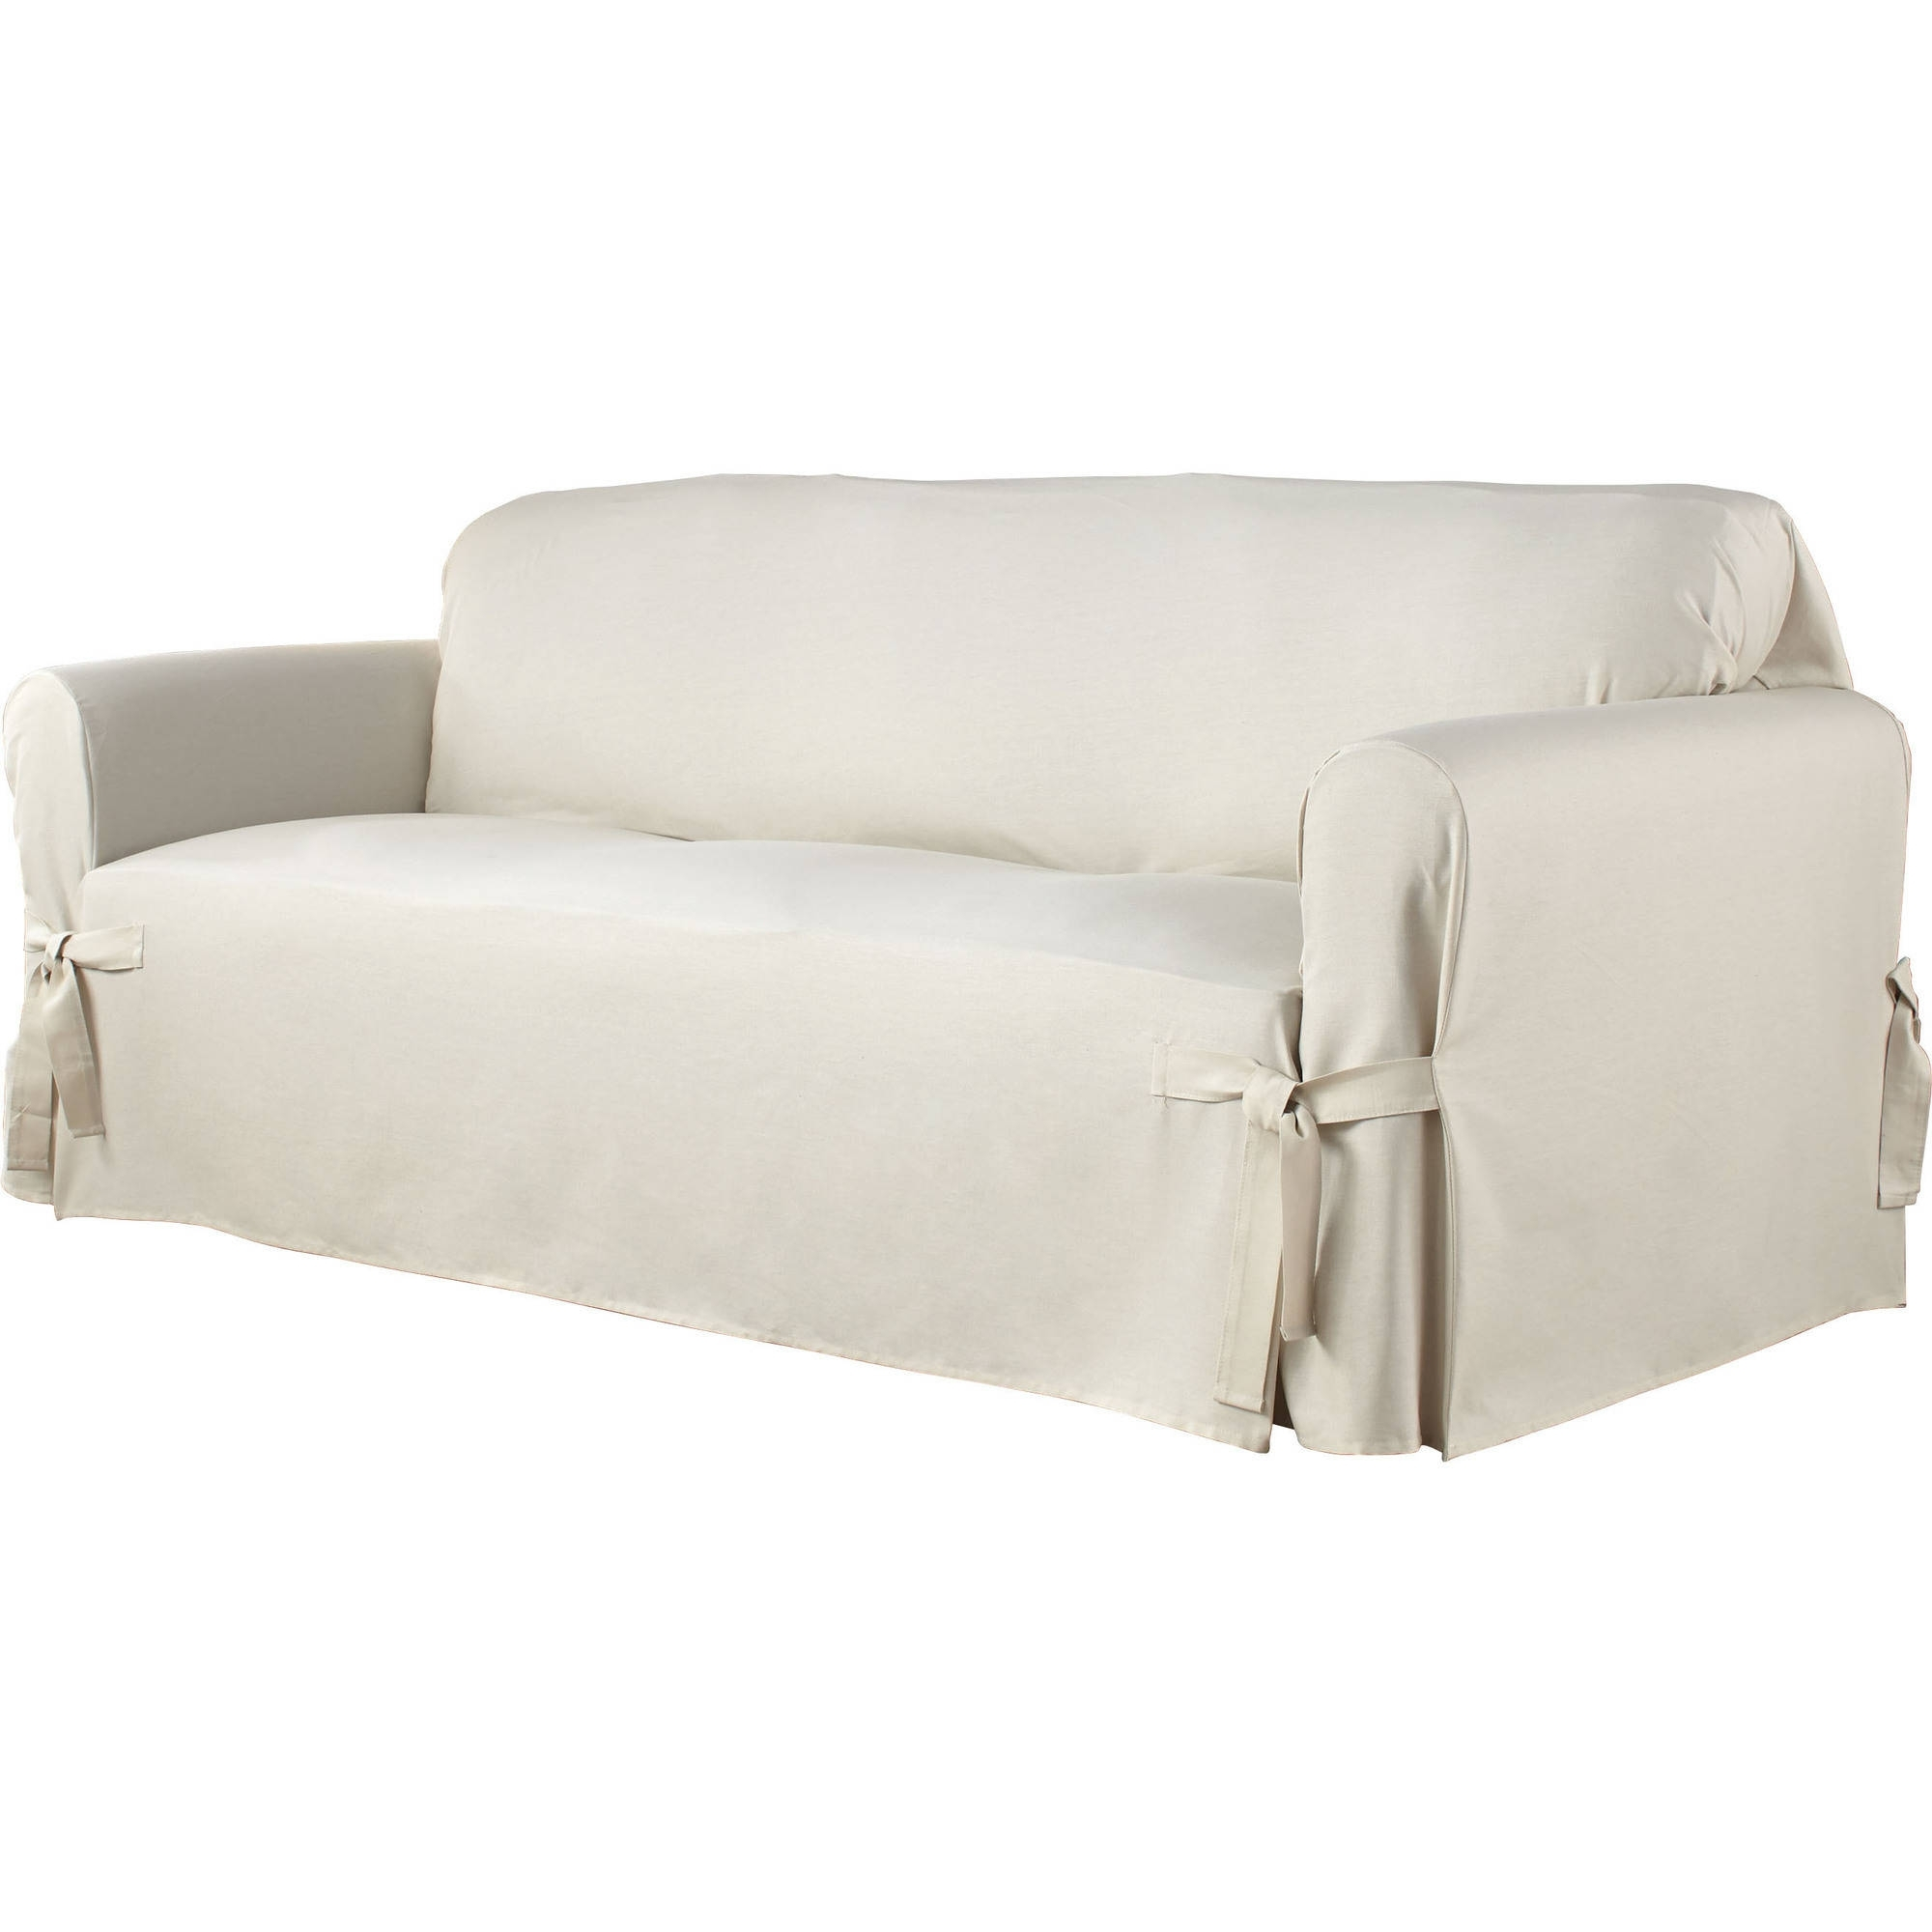 Famous Layaway Sectional Sofas With Furniture: Synergy Furniture (View 19 of 20)